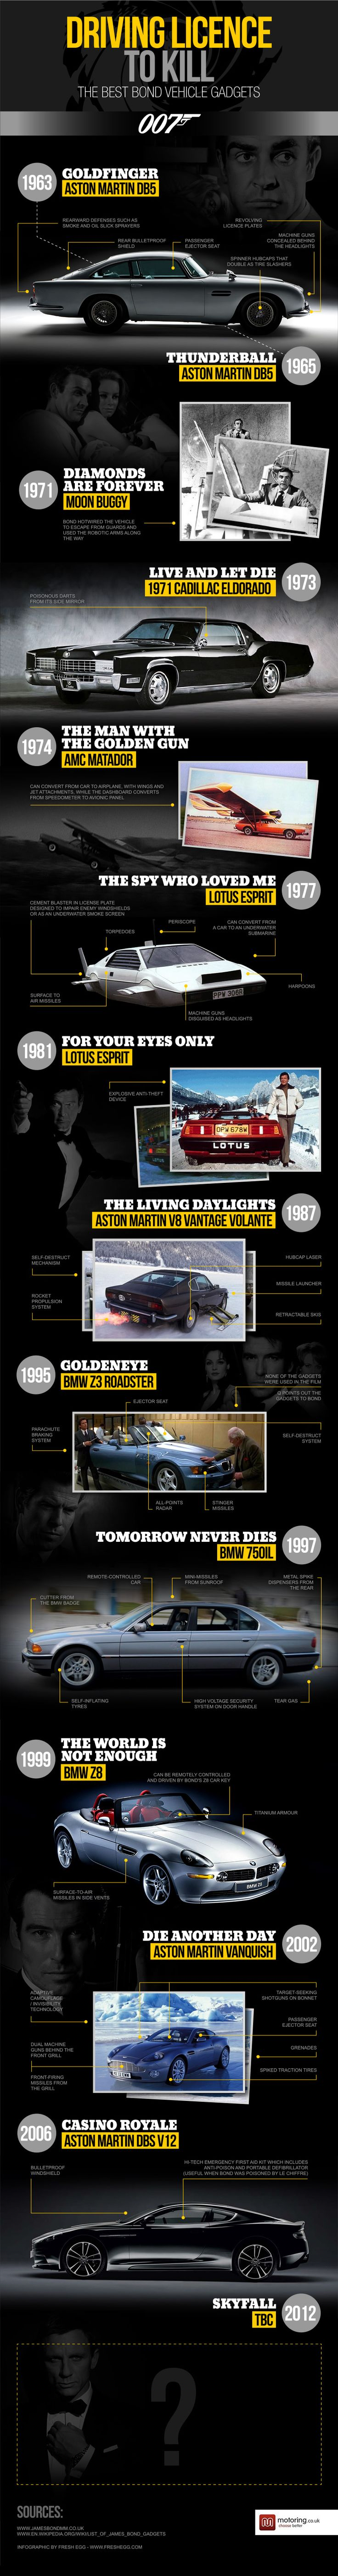 The best James Bond gadgets on cars. Features a range of Bond cars from Goldfinger in 1963 up to present day.